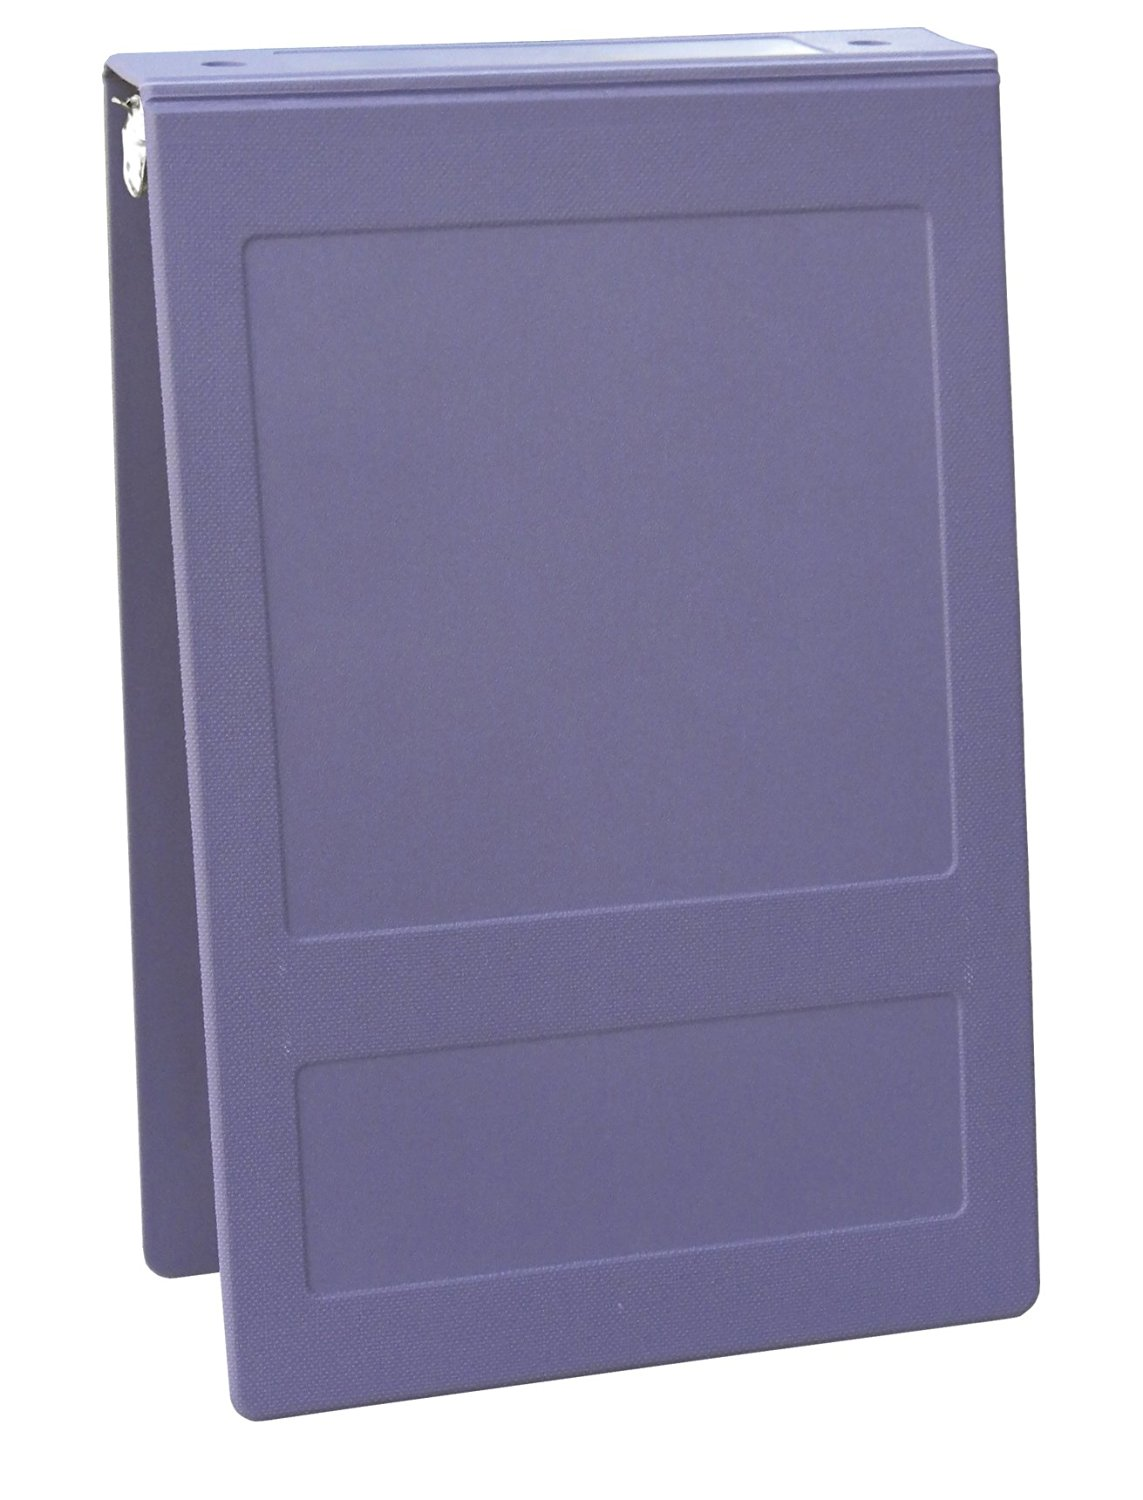 """Top Open 5 Ring Molded Binder Size: 1.5"""", Color: Lilac"""